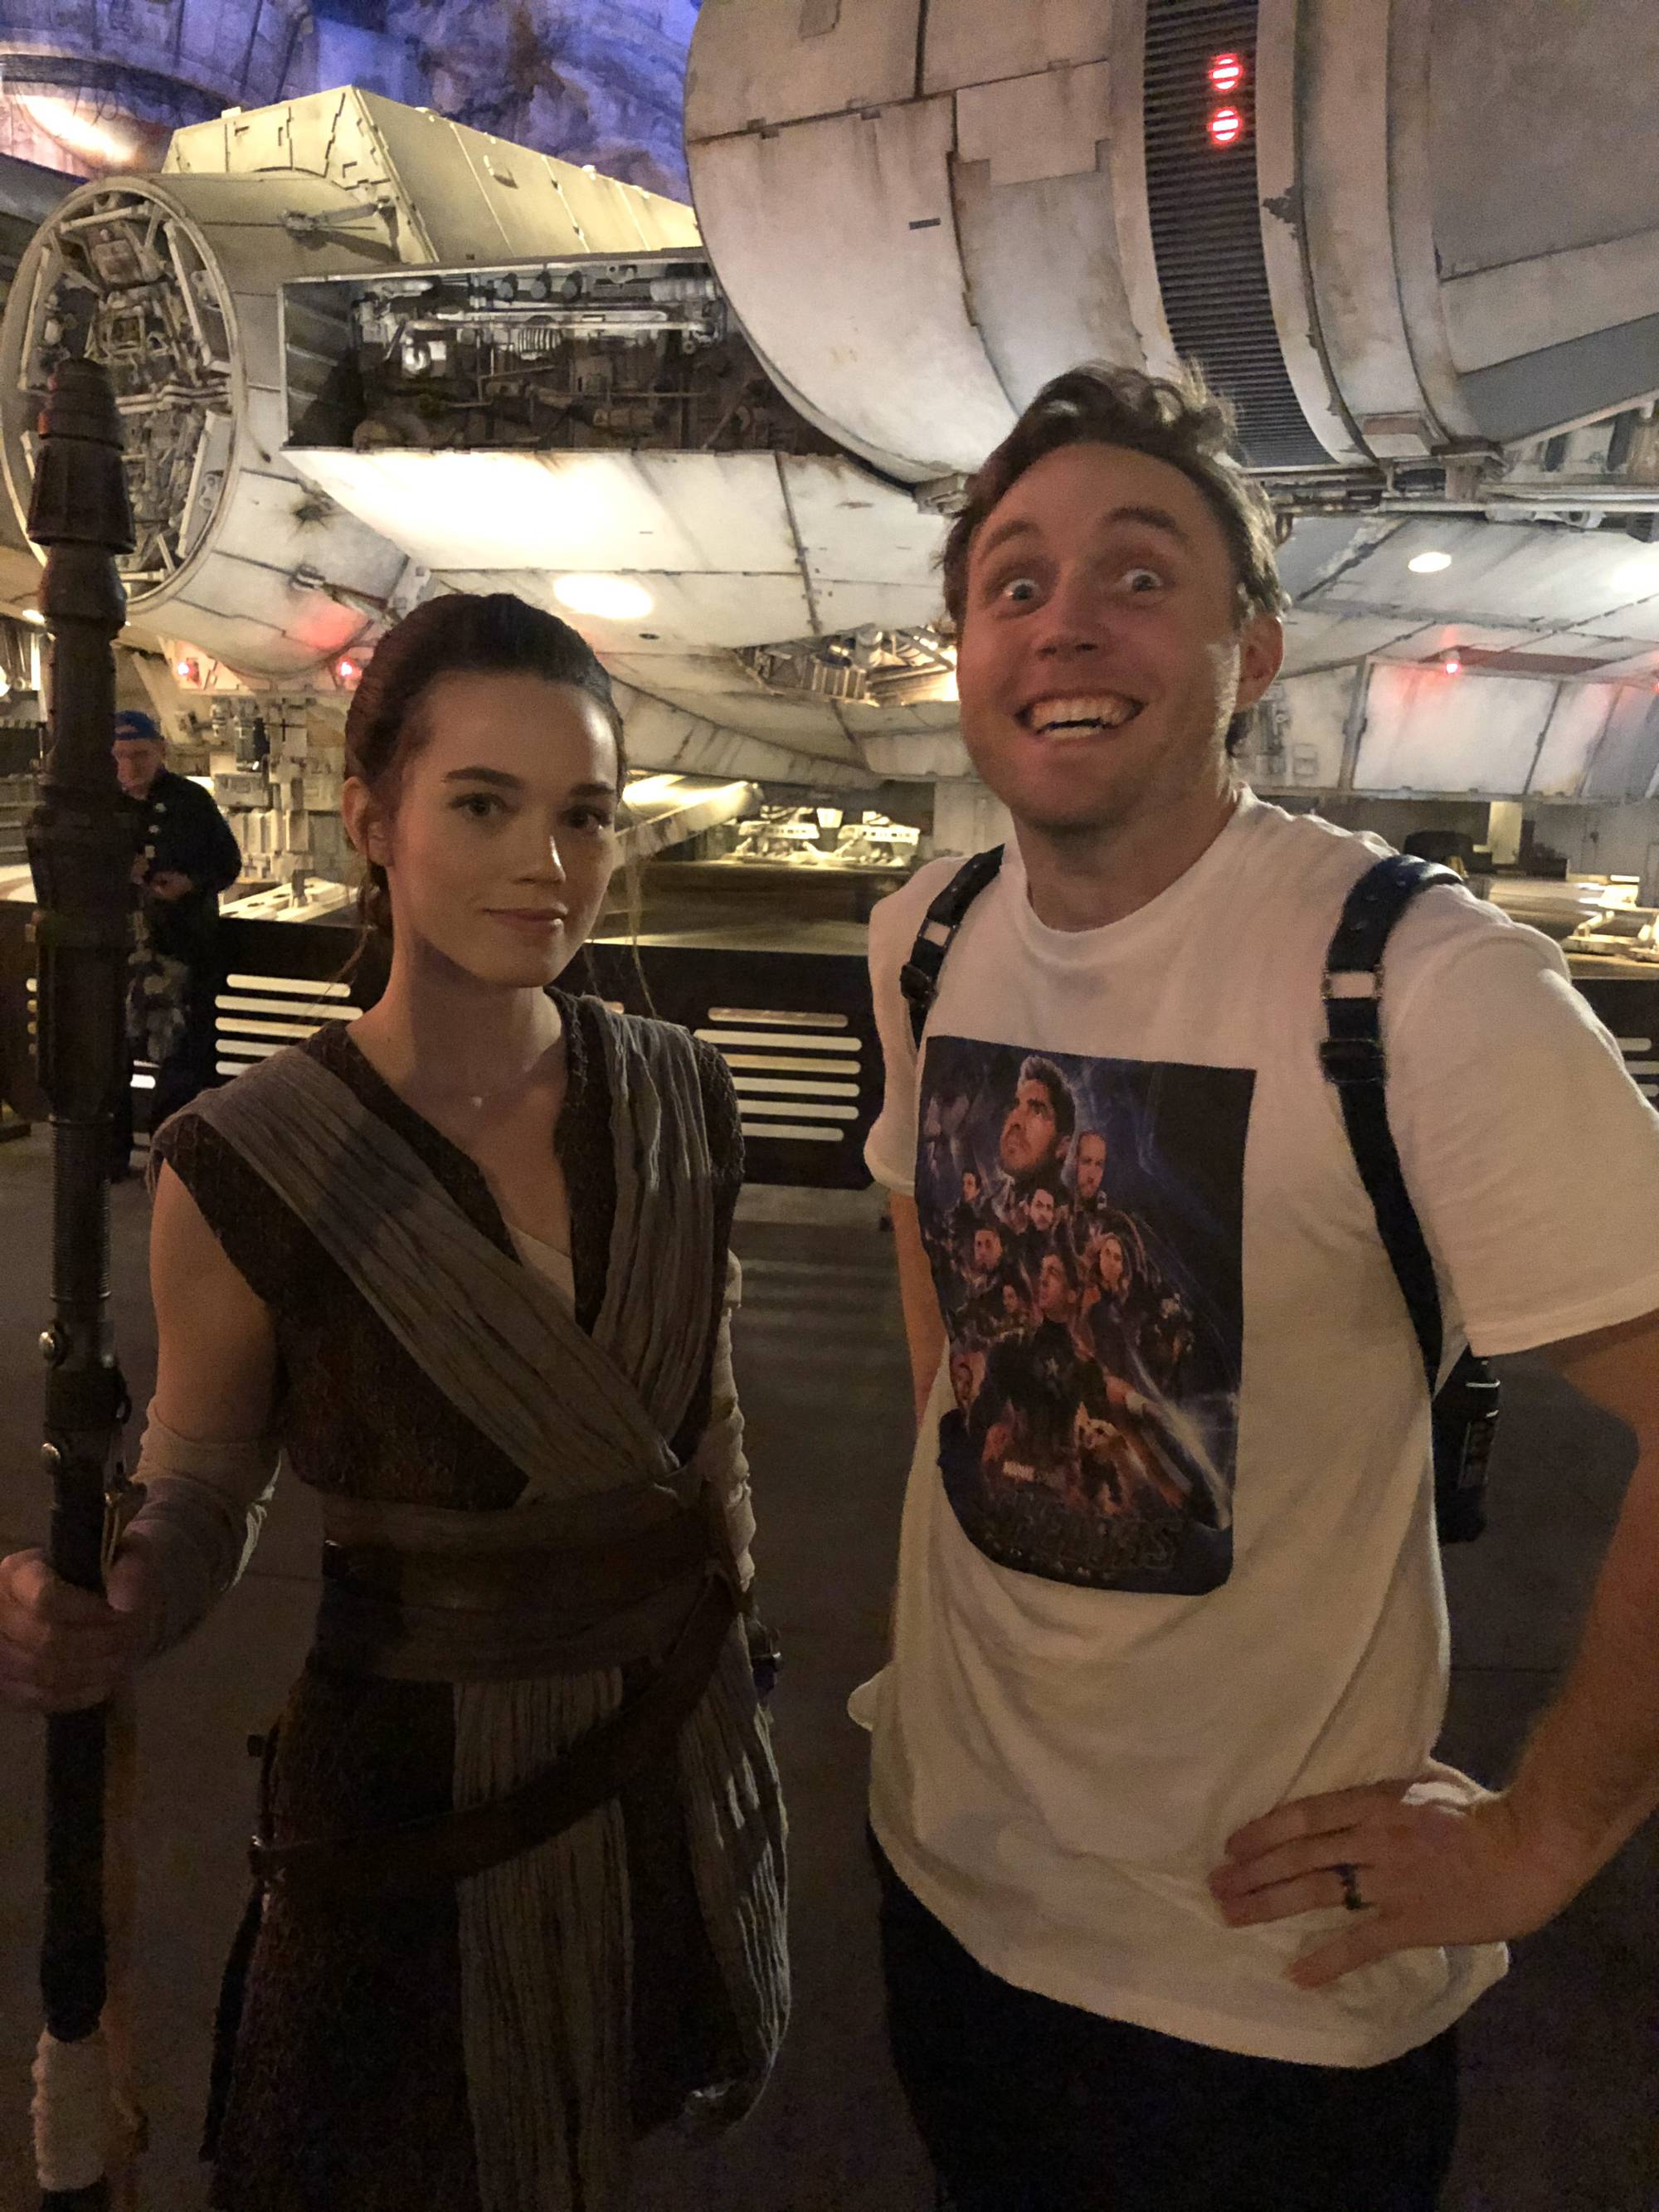 Took my friend to Disneyland and Galaxy's Edge, Rey couldn't sign his autograph book but was willing to take this pictur...